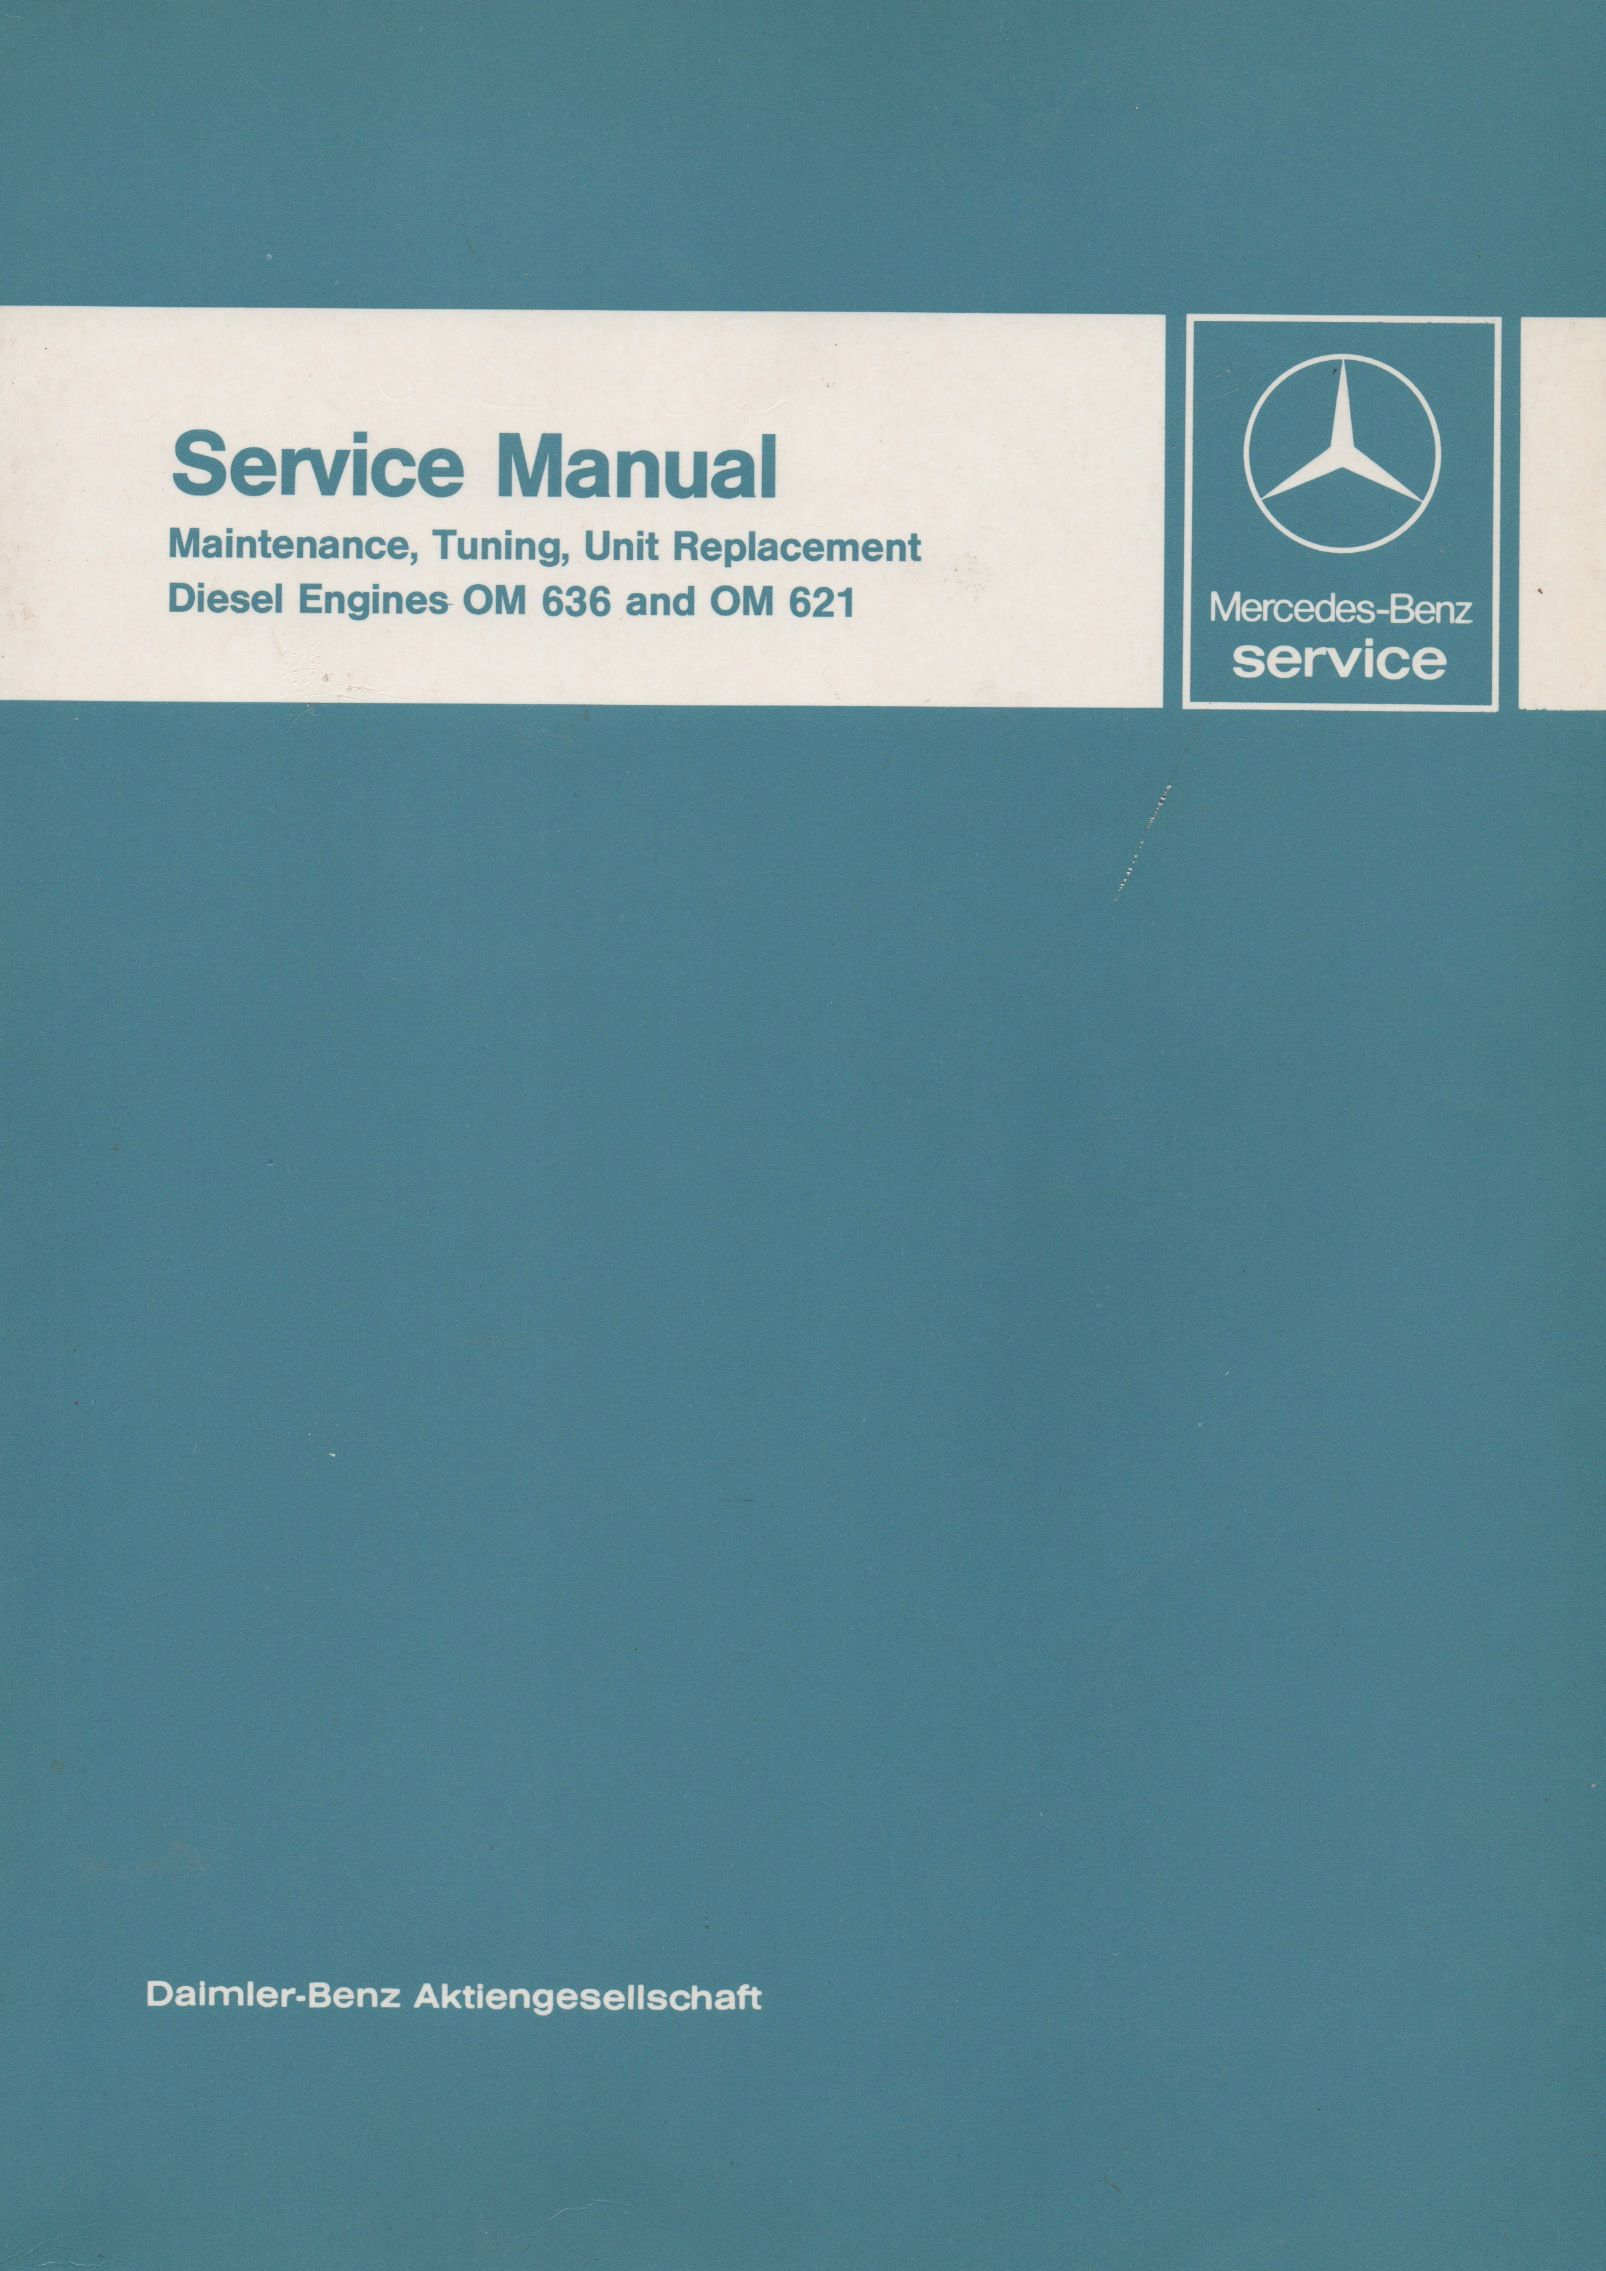 mercedes-benz diesel engines om 636 and om 621 service manual